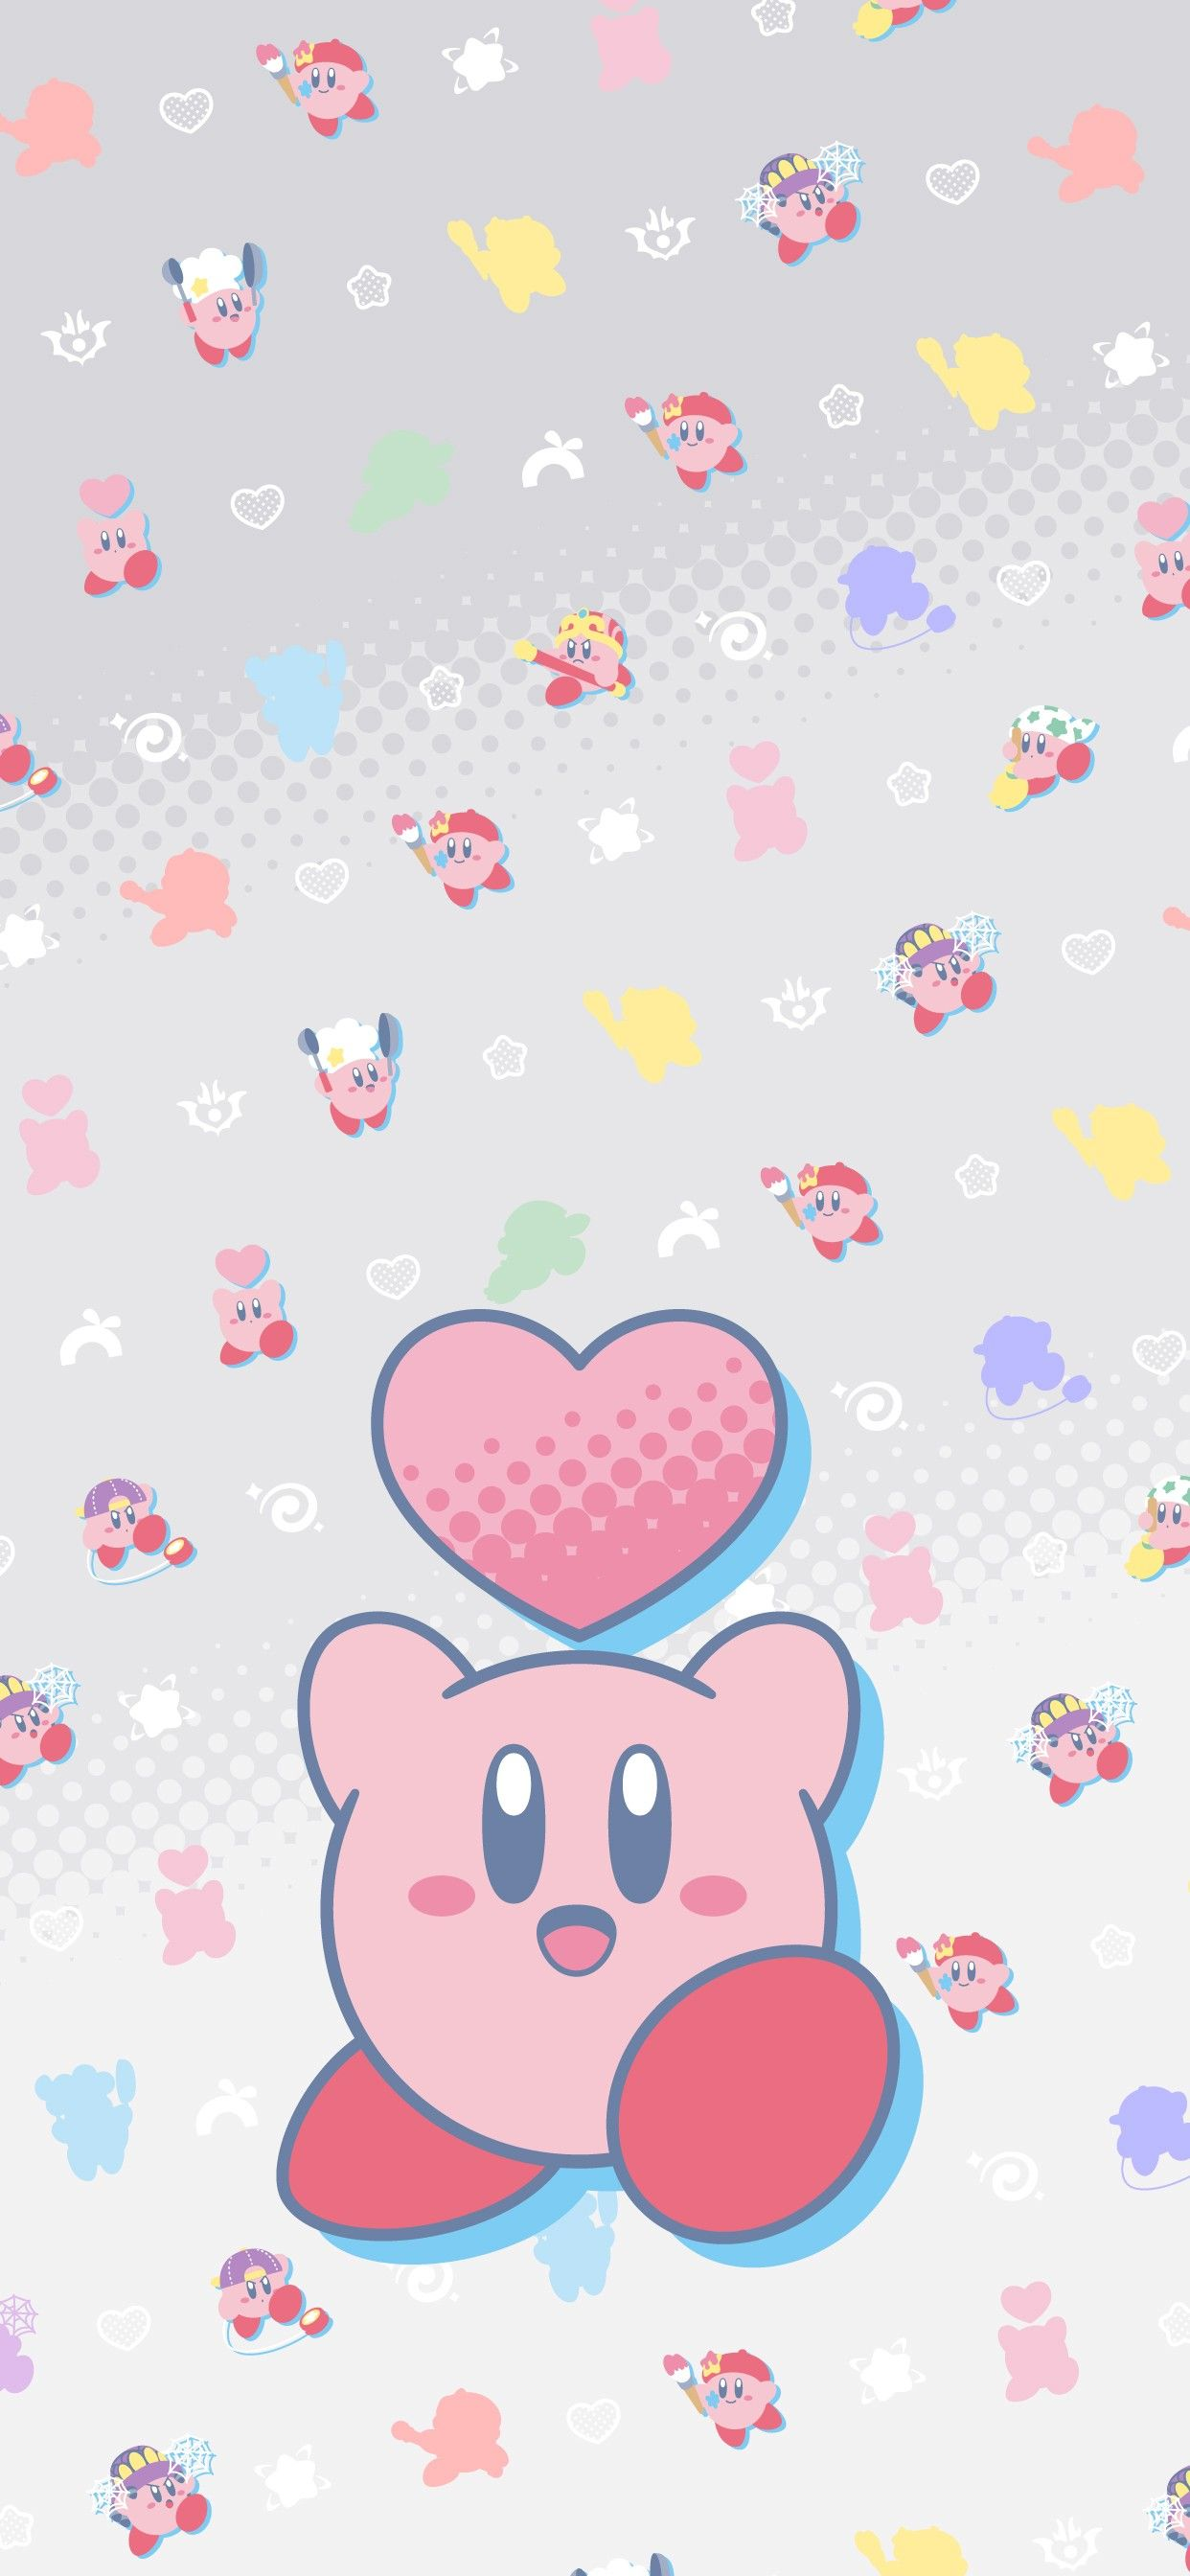 kirby is love, kirby is life (With images) Kirby art